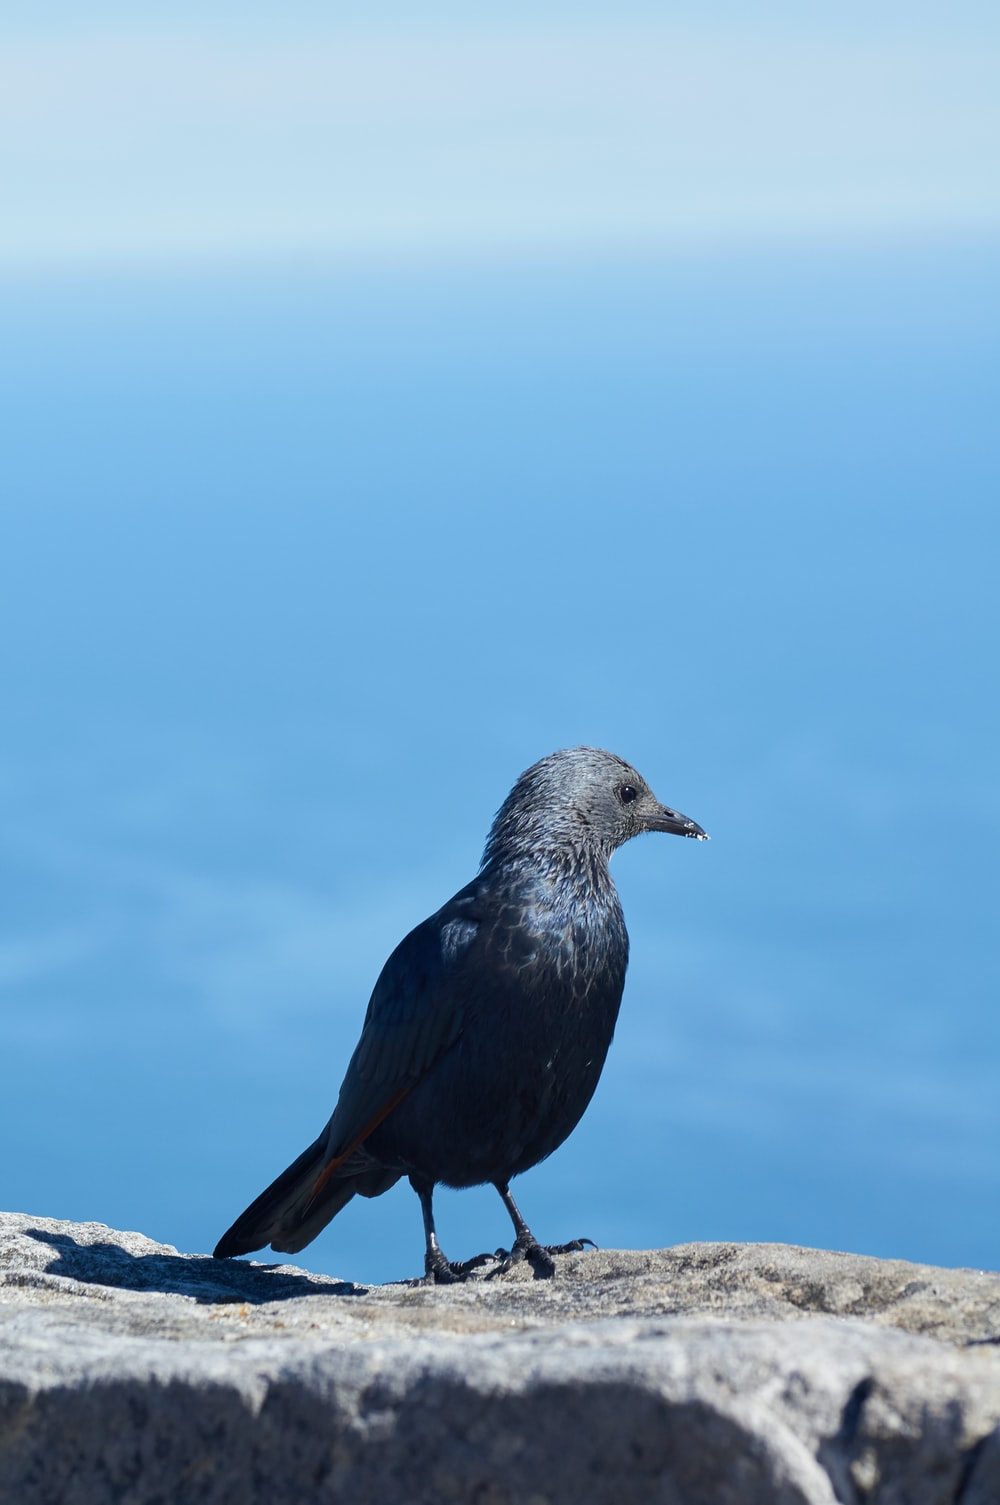 black bird on stone during daytime